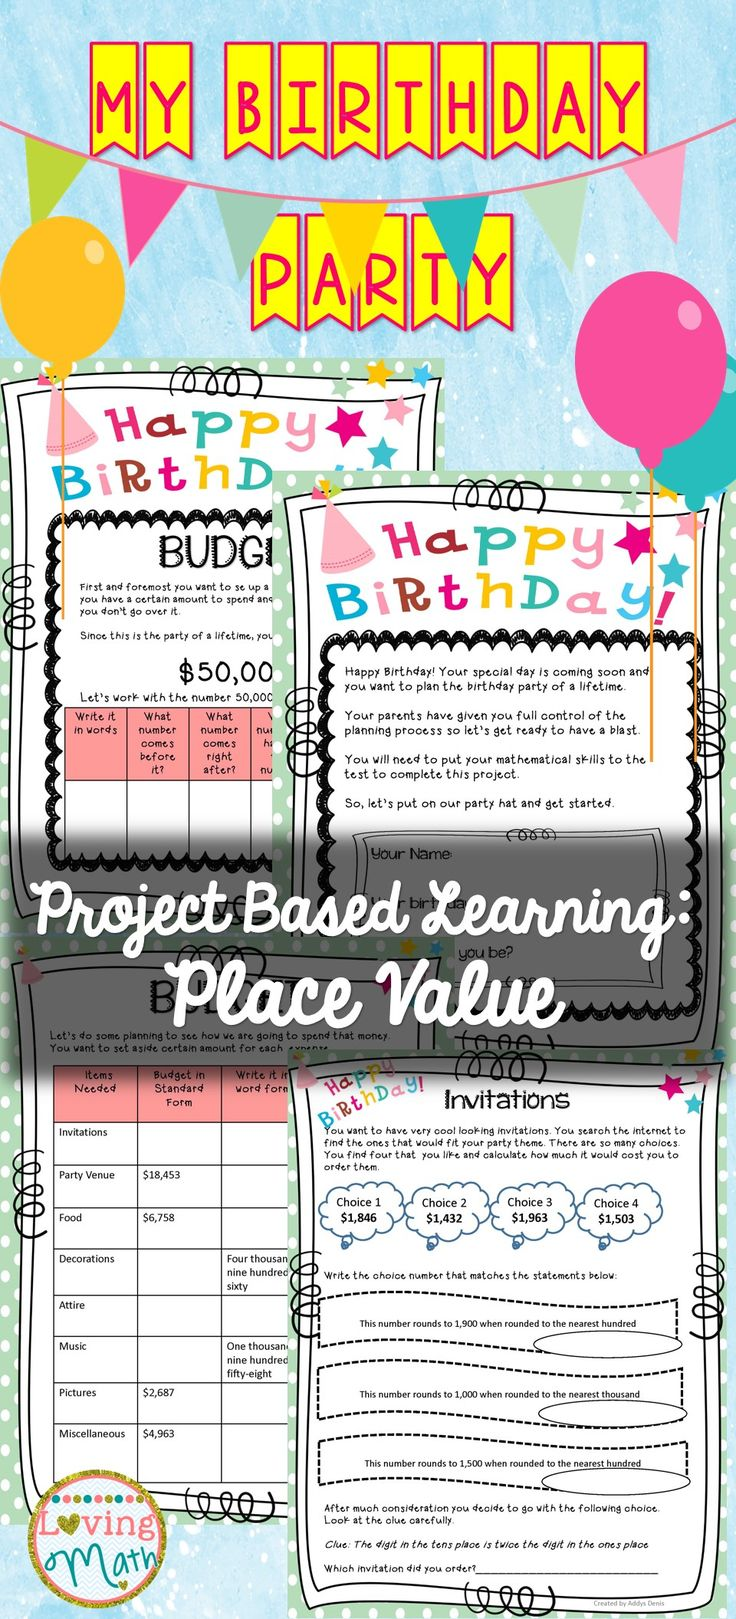 Awesome Project Based Learning Activity: Planning My Birthday Party - Students plan their dream birthday celebration while practicing place value skills.